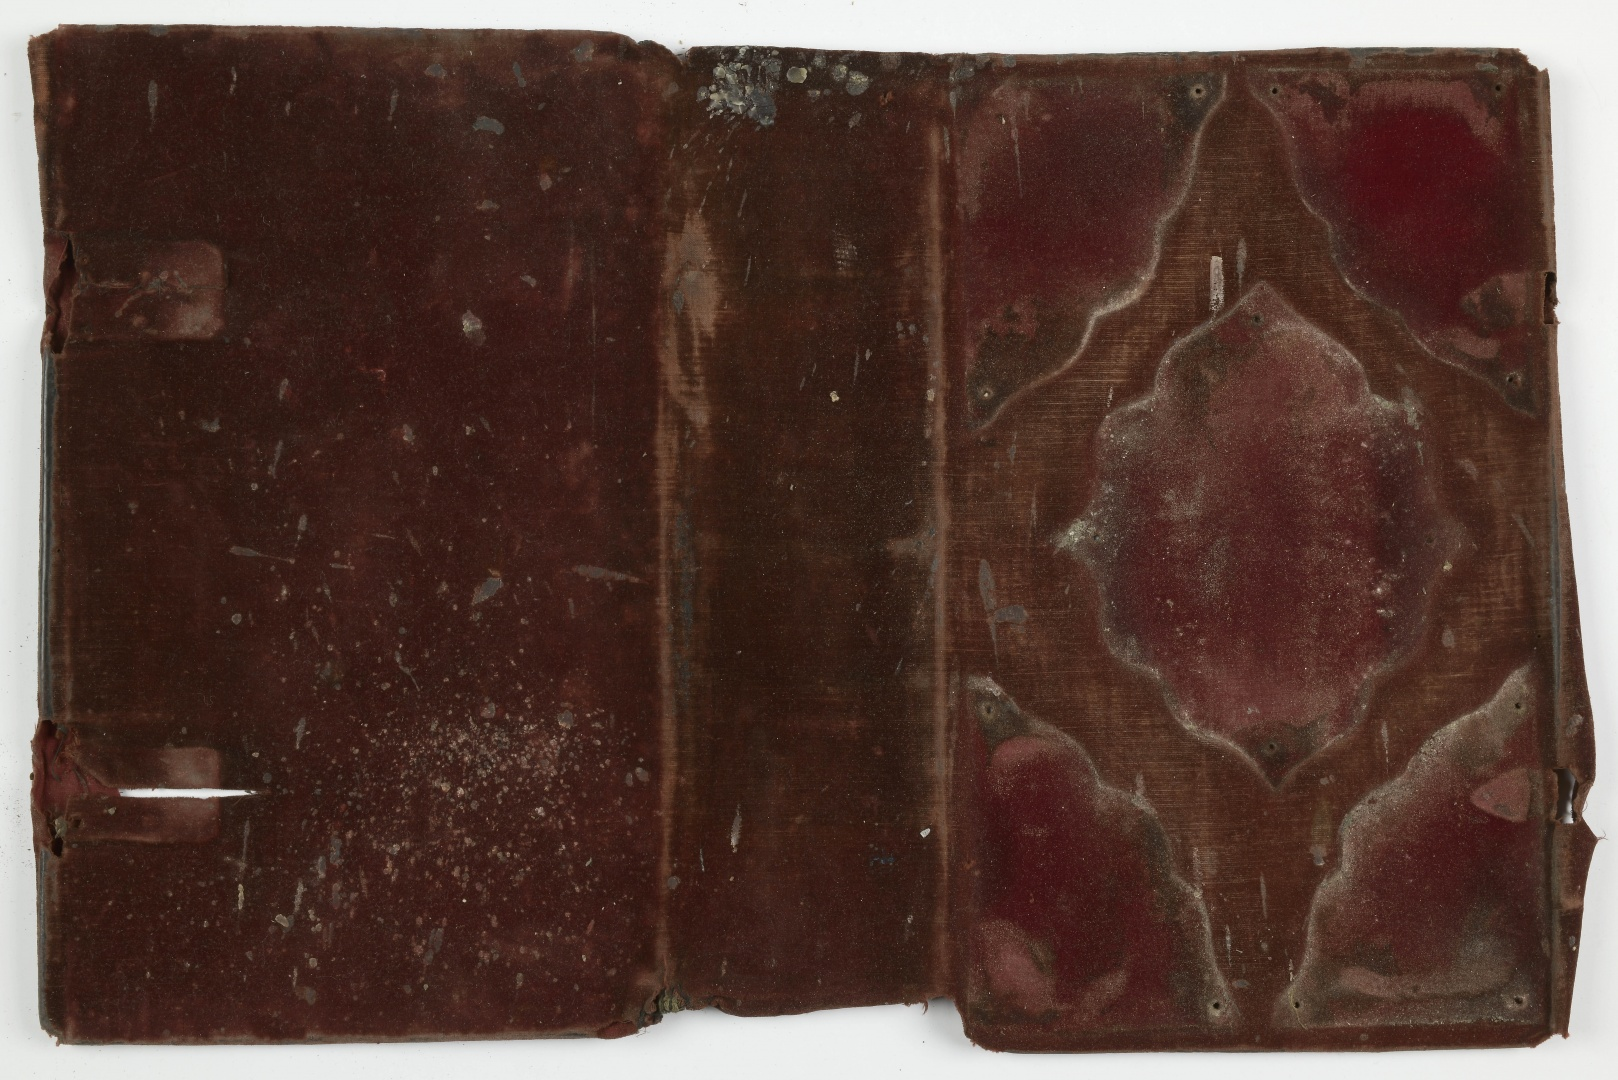 ill 26. The covering fabric of the Gospel boards was soiled and faded, the pile of the velvet worn with some holes and rips.